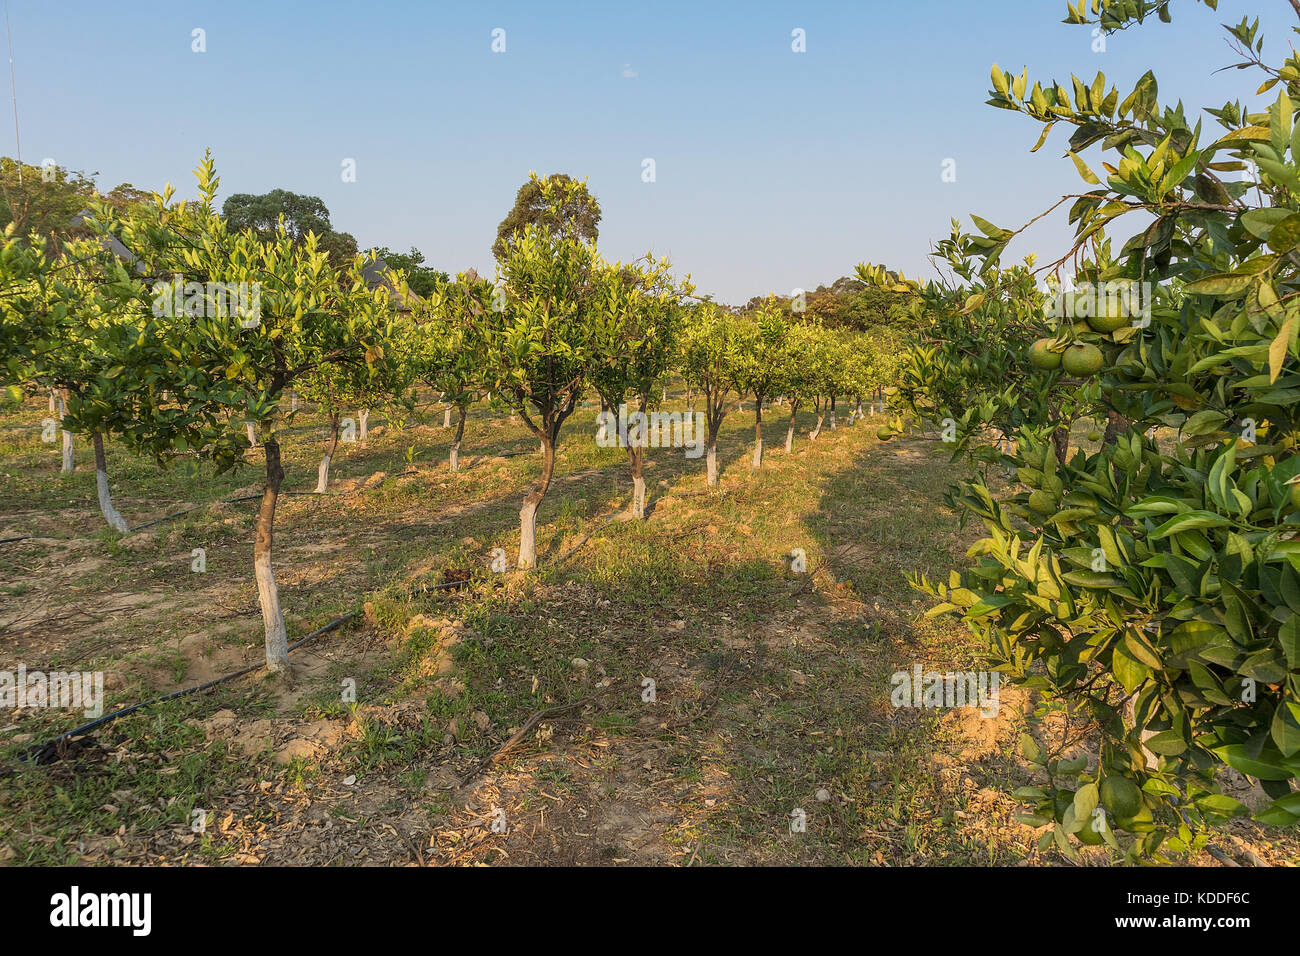 Plantation of orange trees in the green state. Angola. Africa - Stock Image